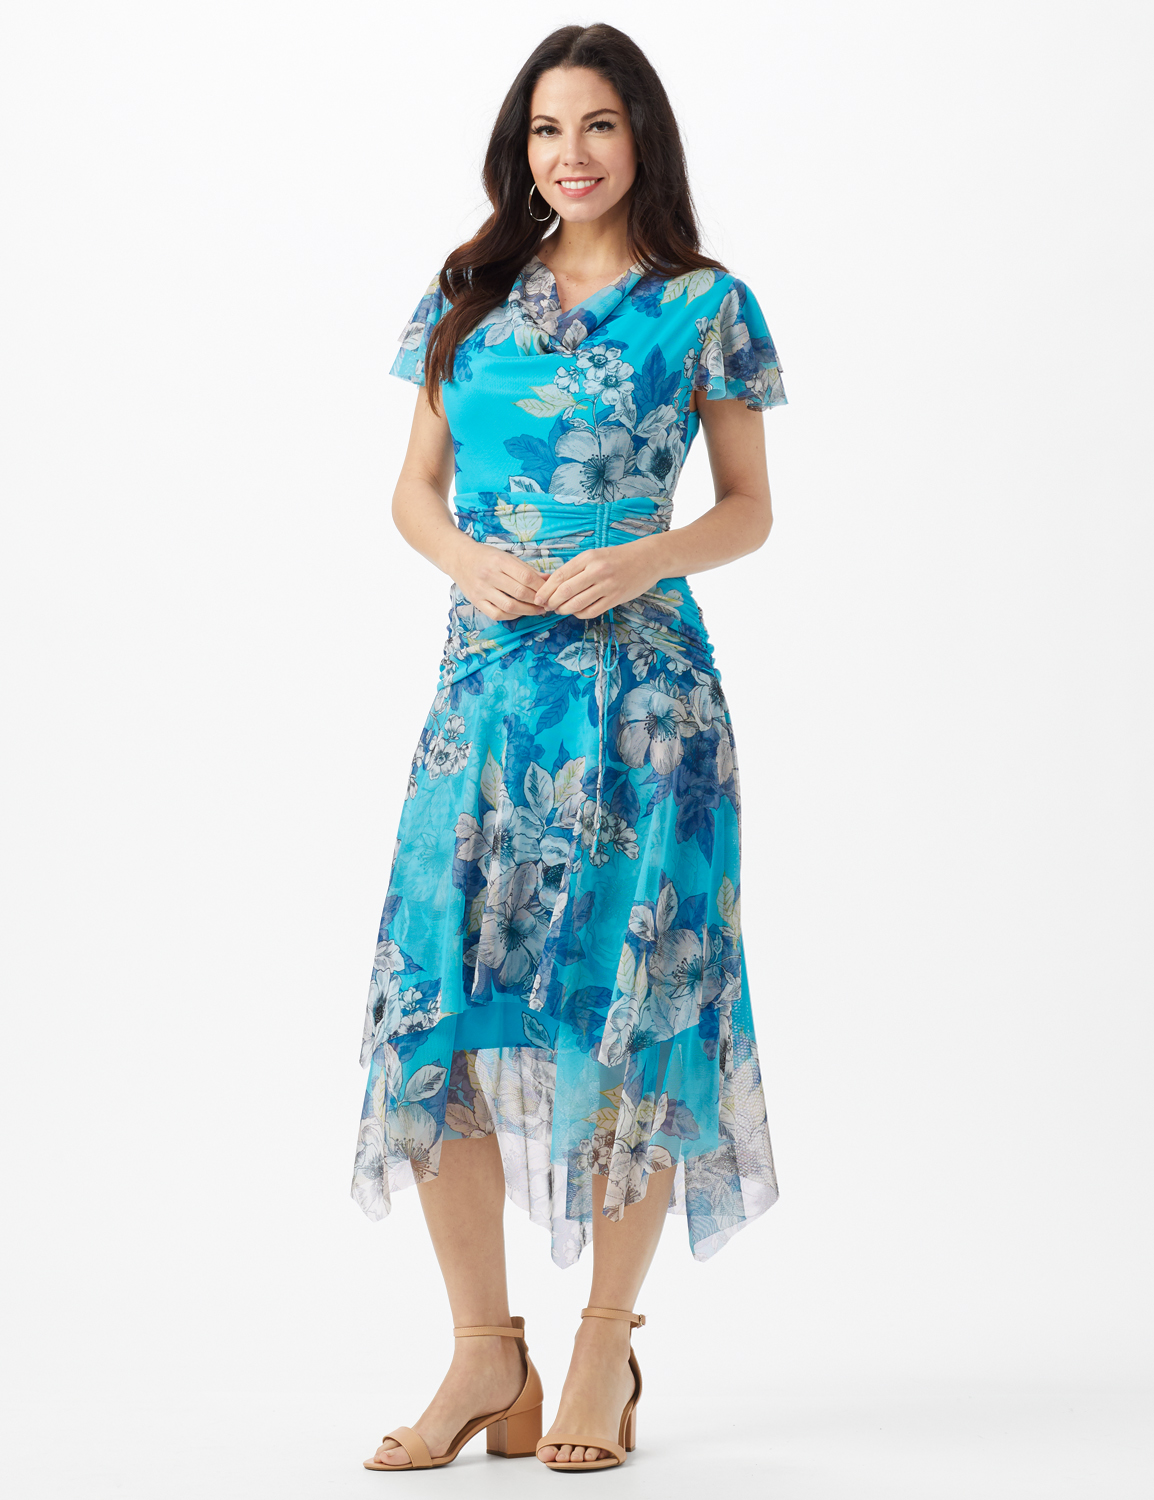 Mesh Floral Drape Neck Gathered Waist with Side Tie -Turq/Sand - Front